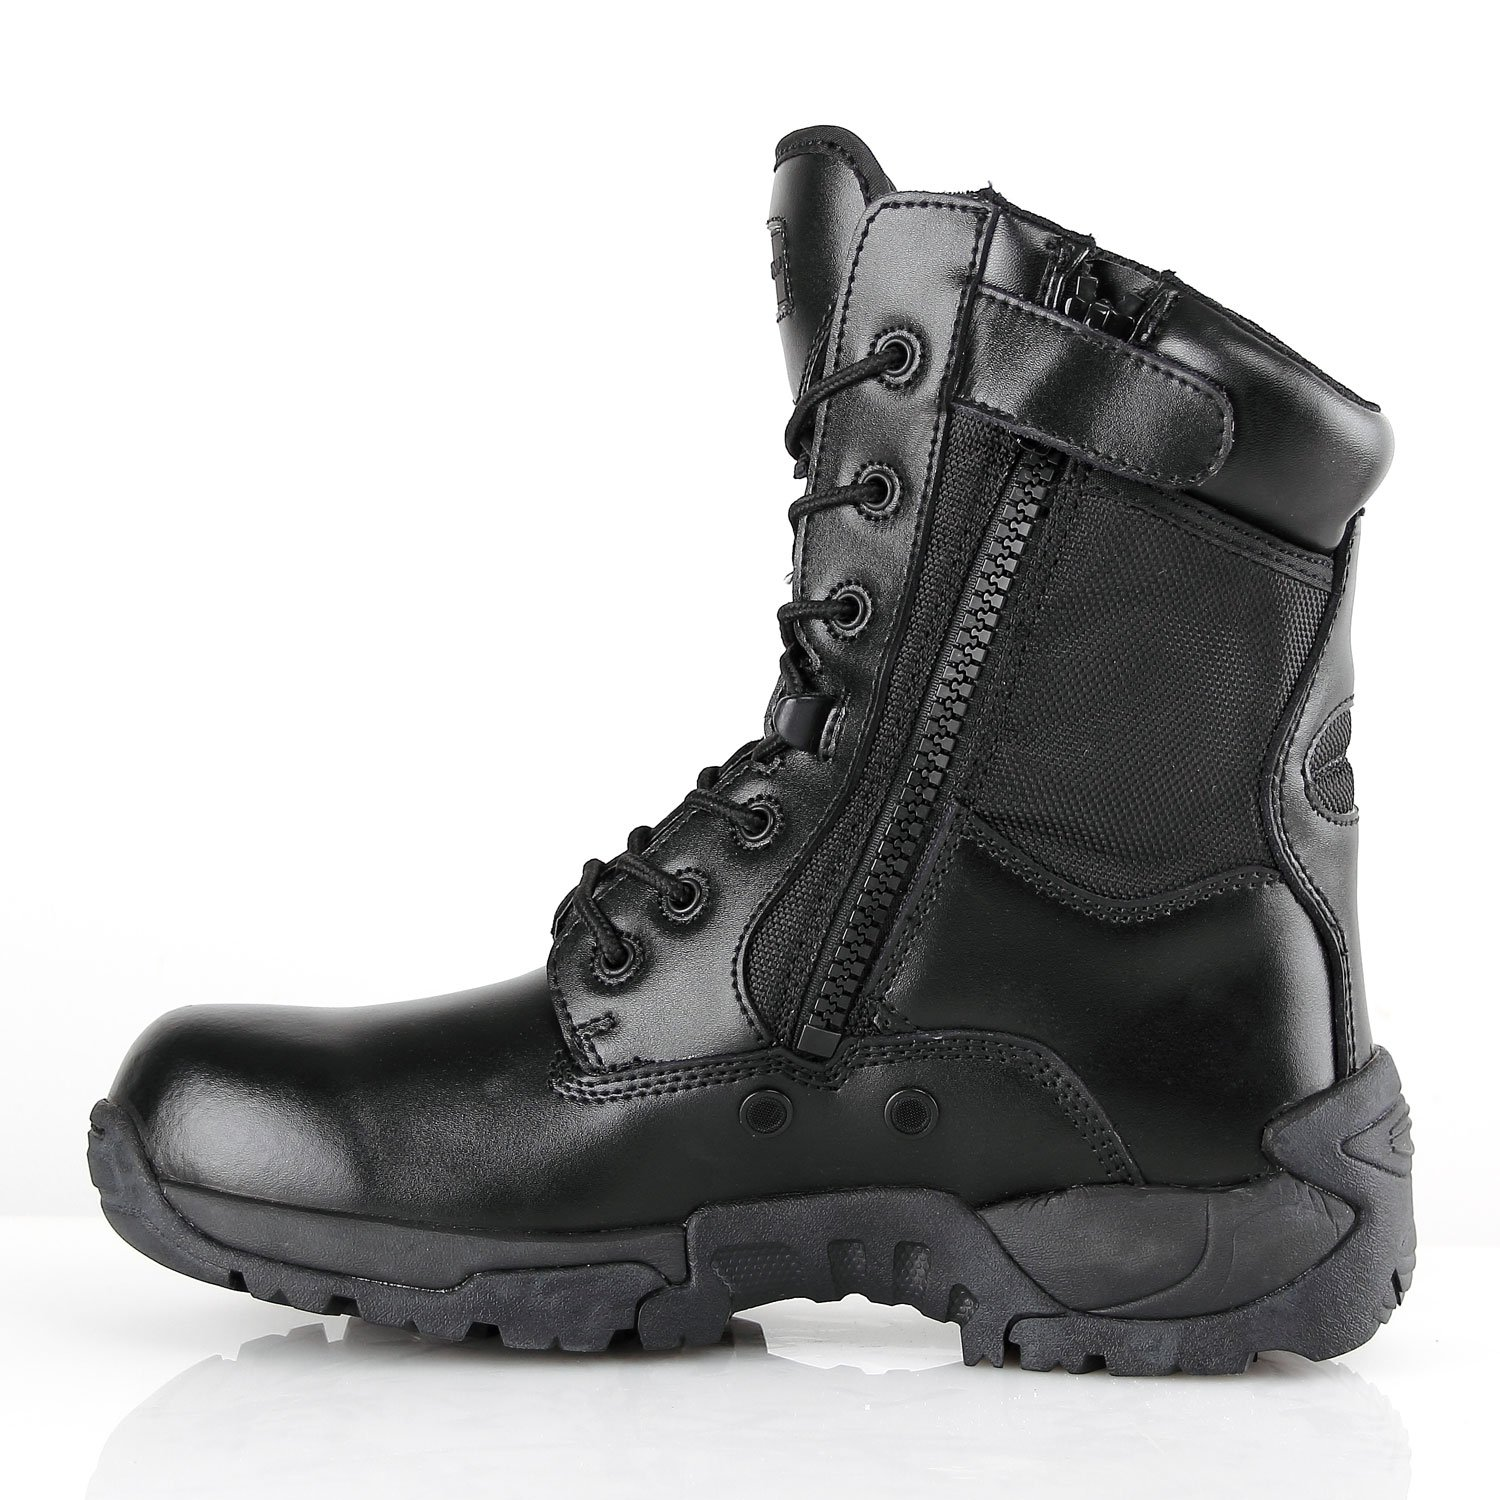 BURGAN 871 TAC Force 8 inch Tactical Zipper Boot B07BTB3NY6 / 46 (US Mens 12 / B07BTB3NY6 Ladies 13)|Black a8728c